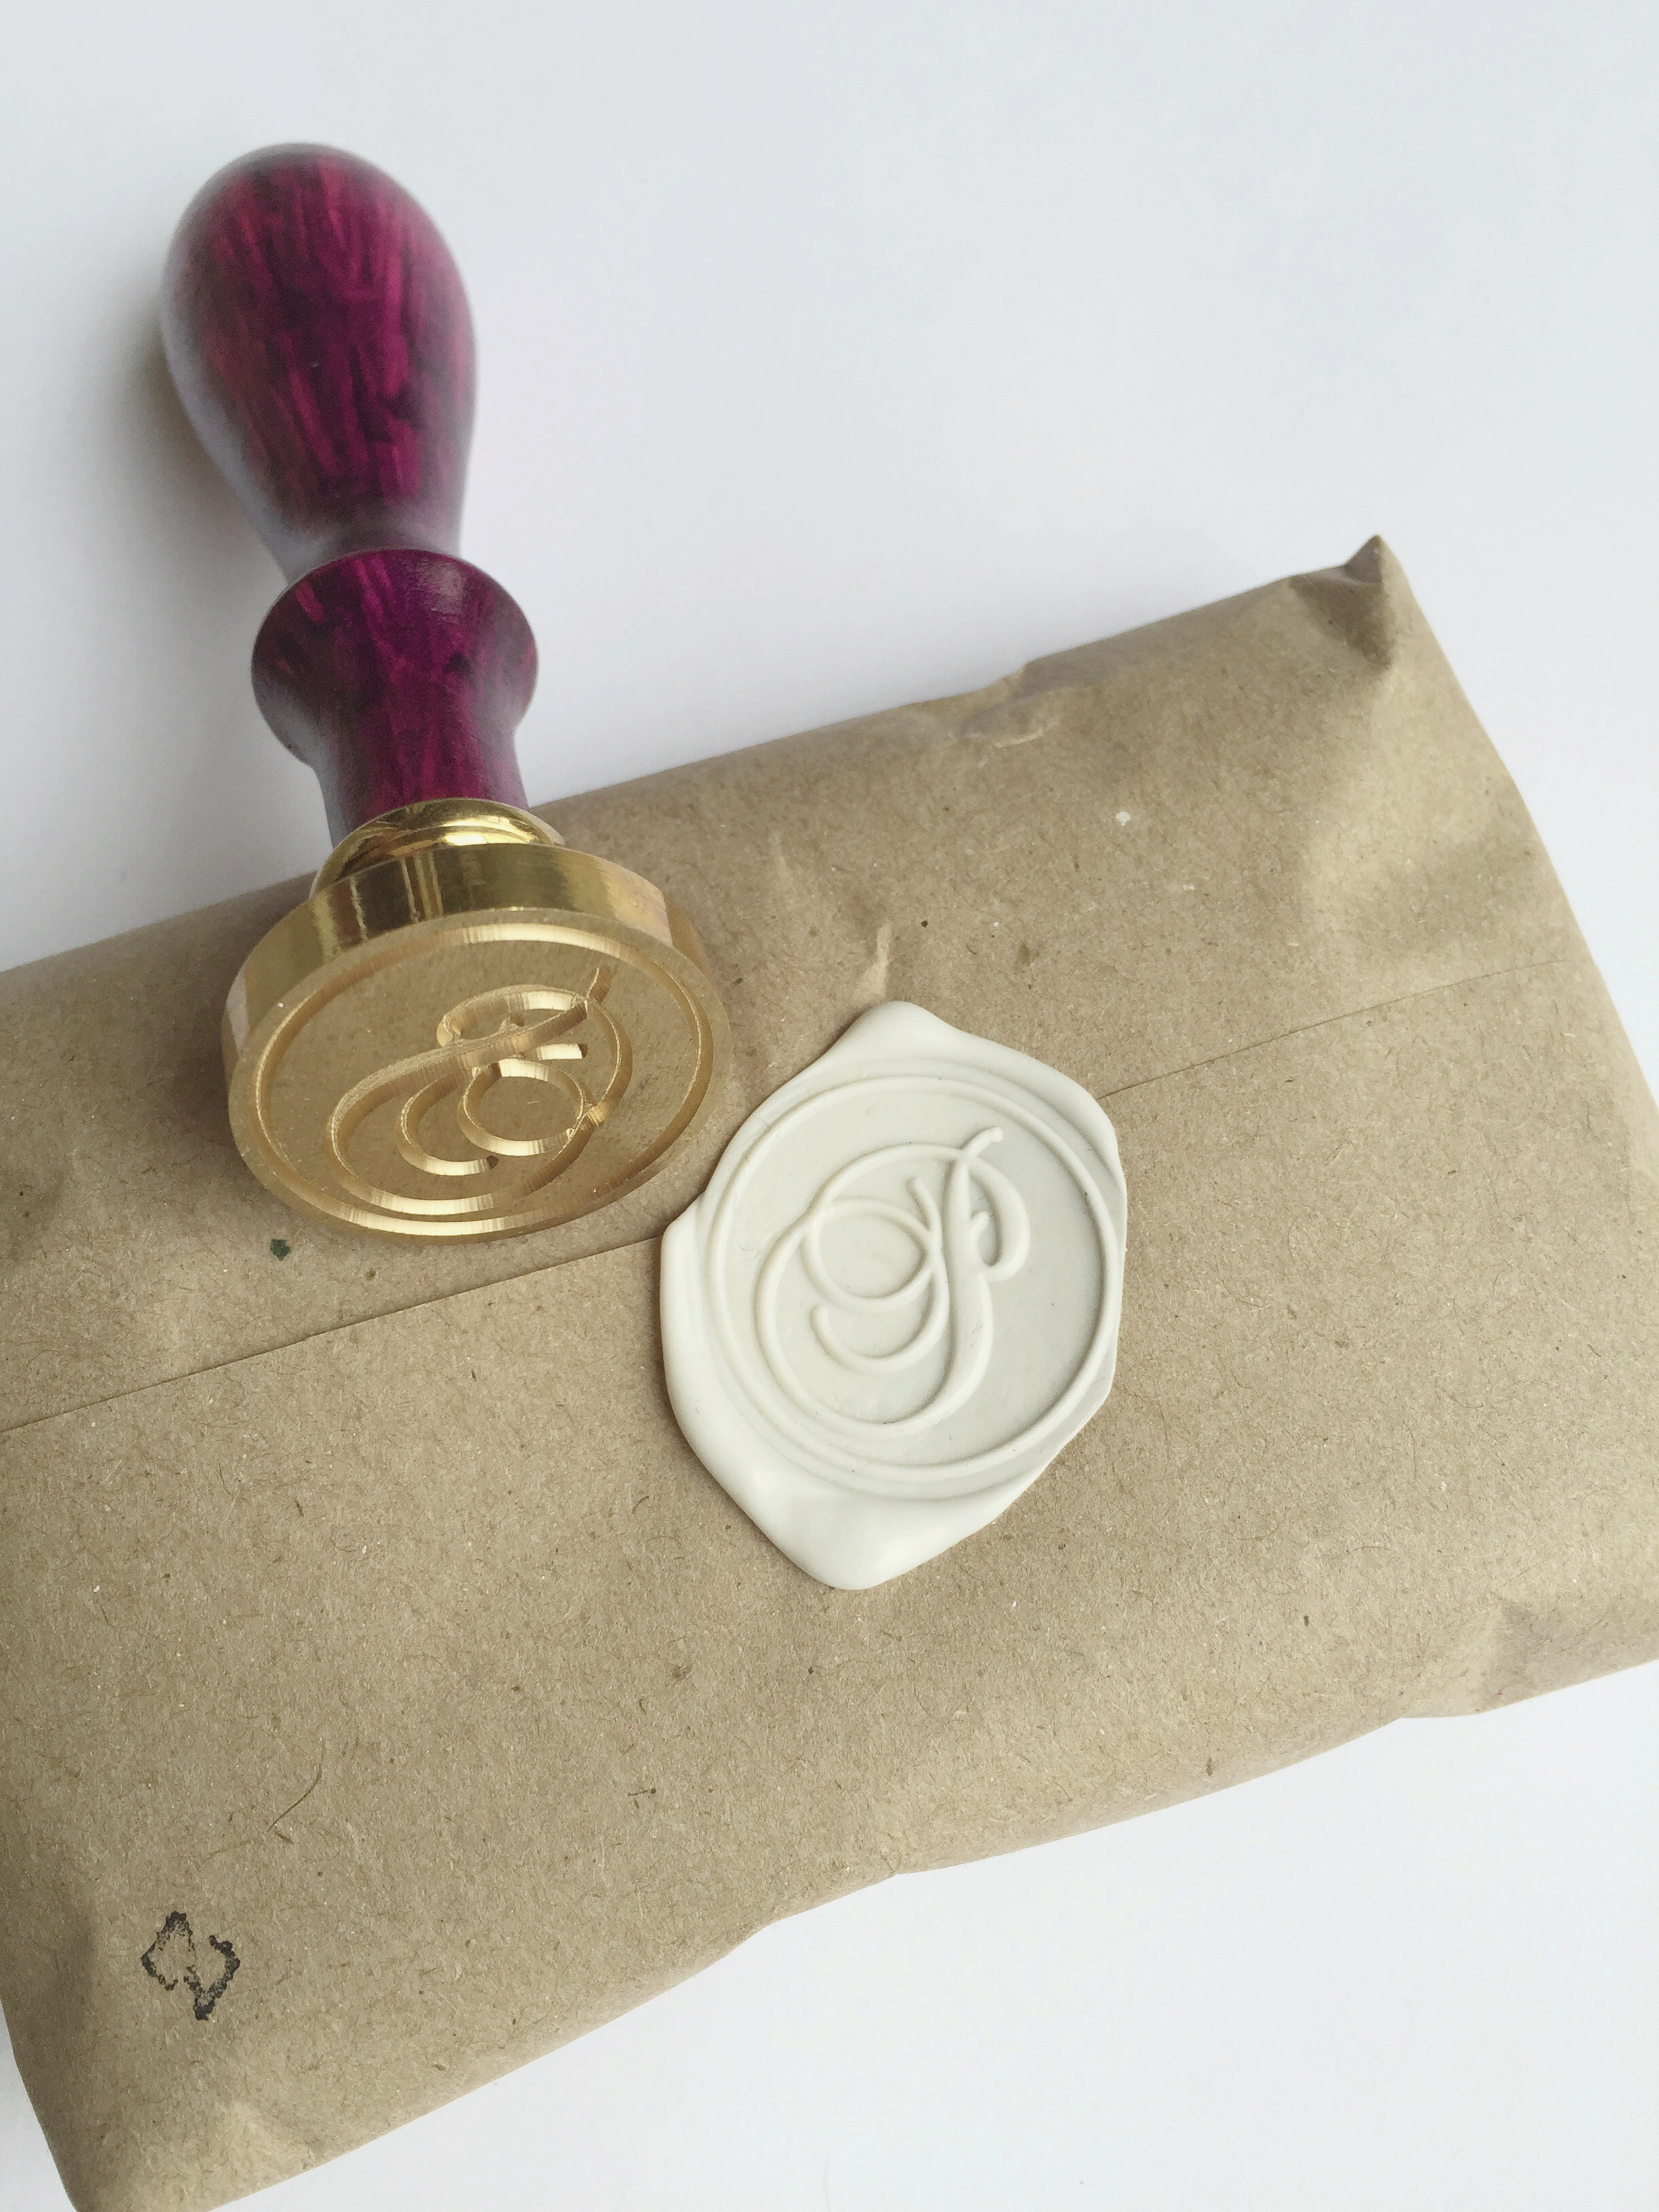 how to make wax for a wax seal